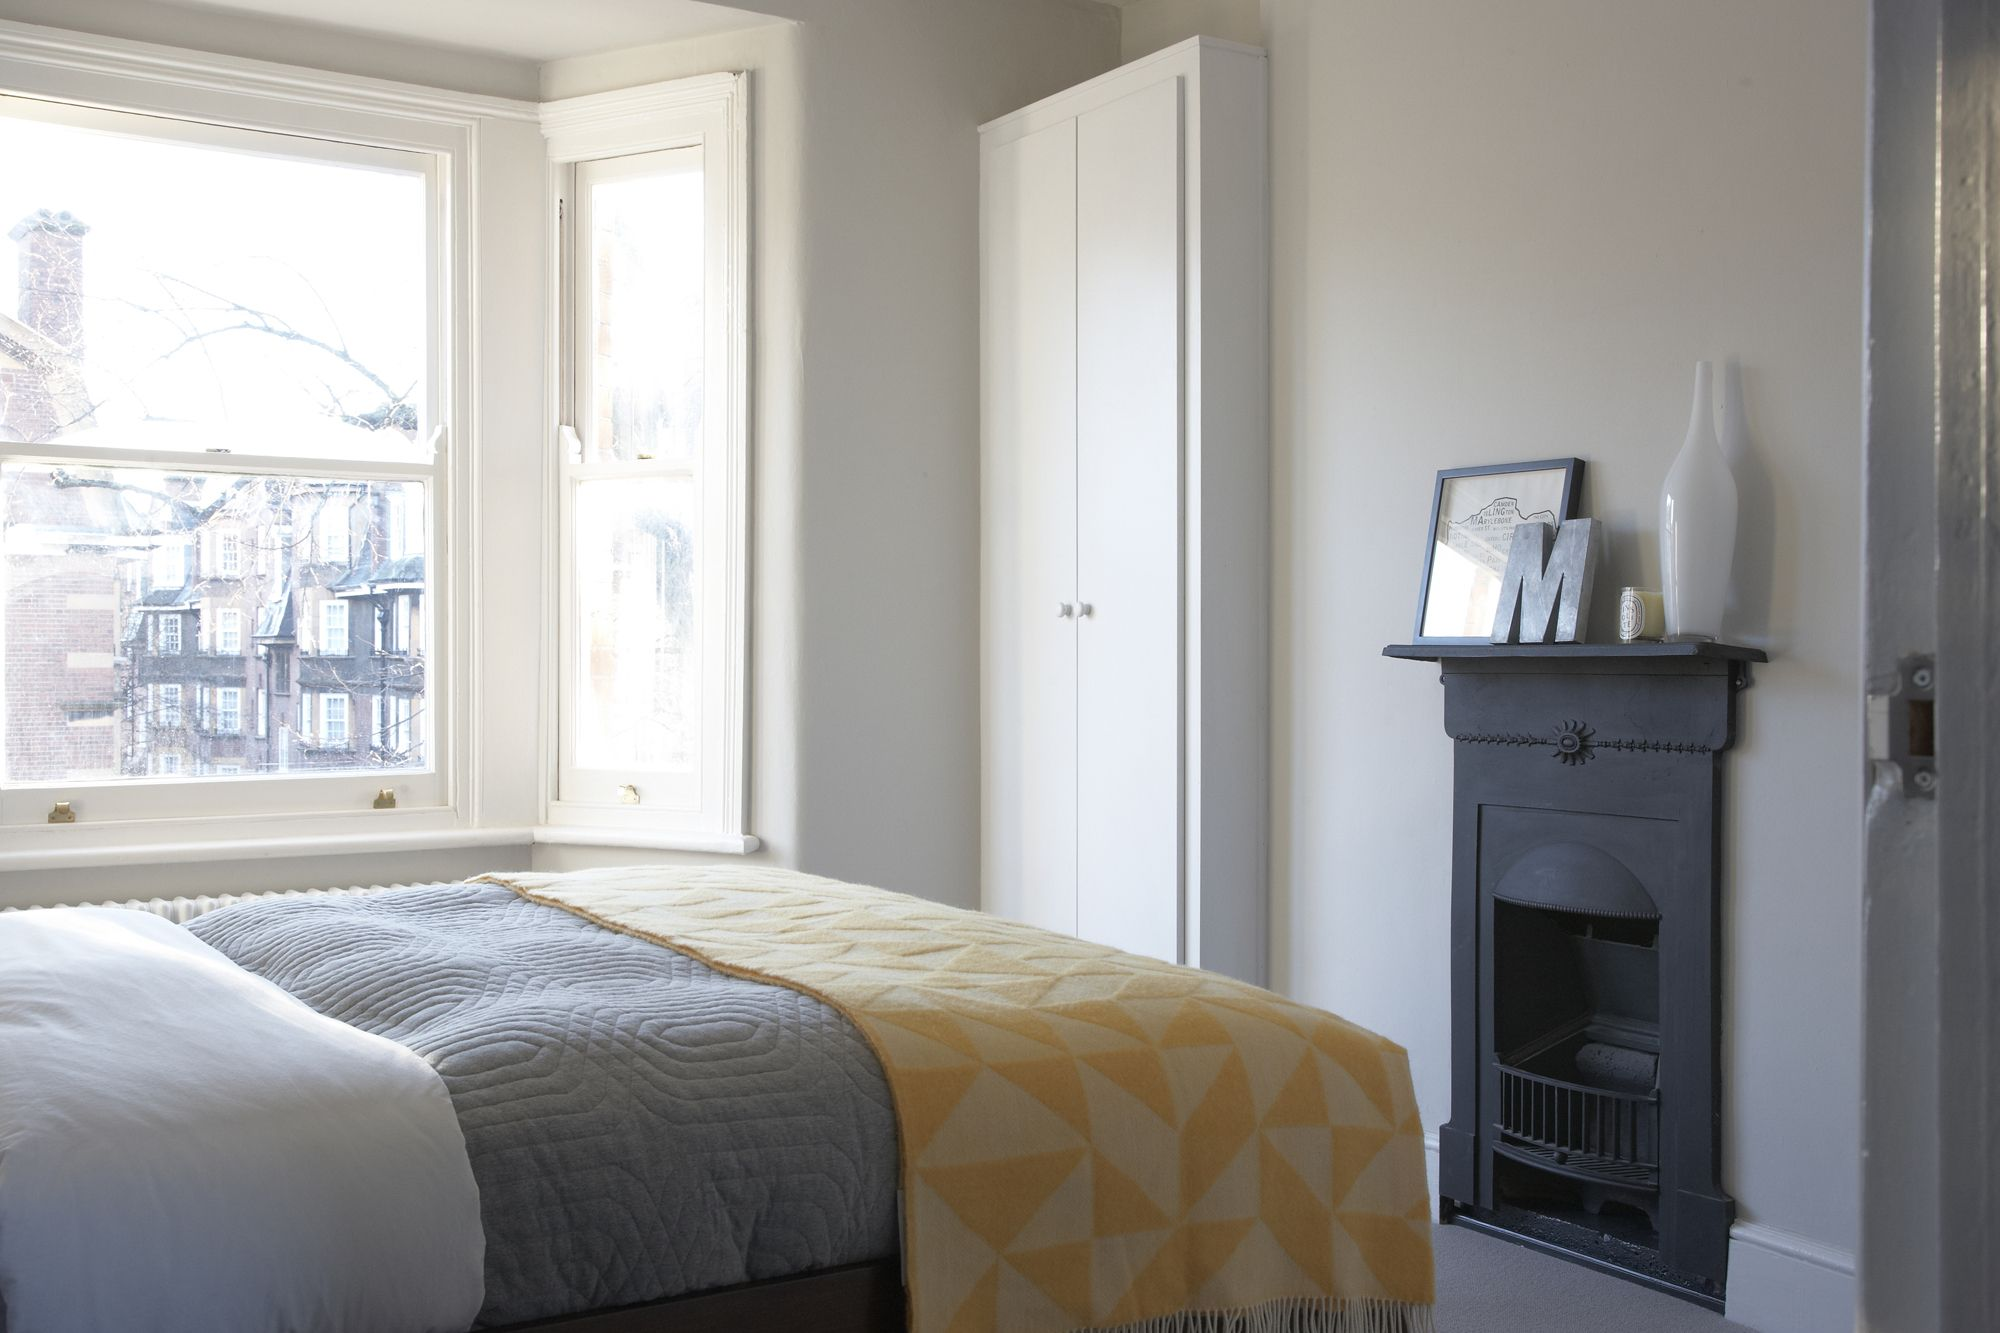 Simple Bedroom Colour grey, black, yellow, white. farrow and ball - ammonite, simple